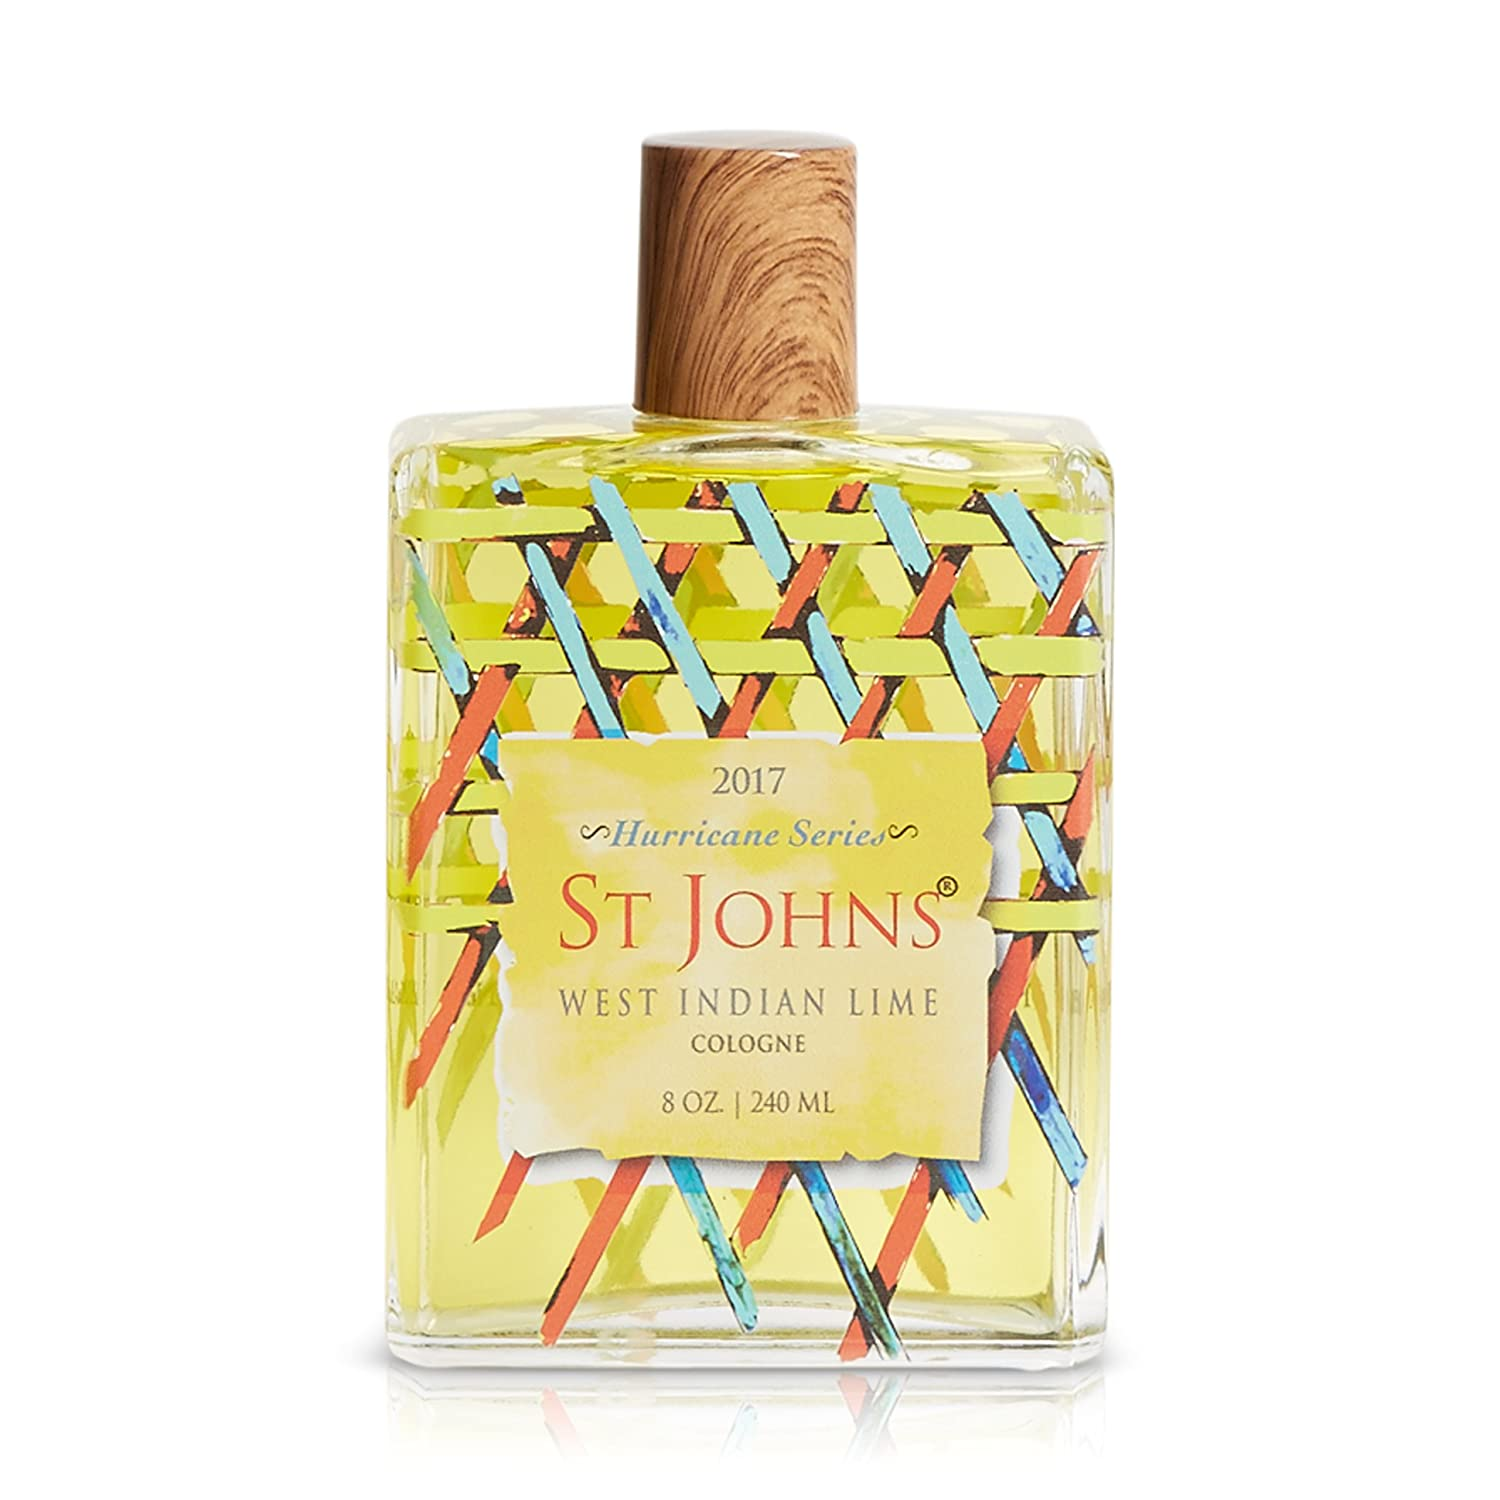 Hurricane Series West Indian Lime Cologne (8oz.)